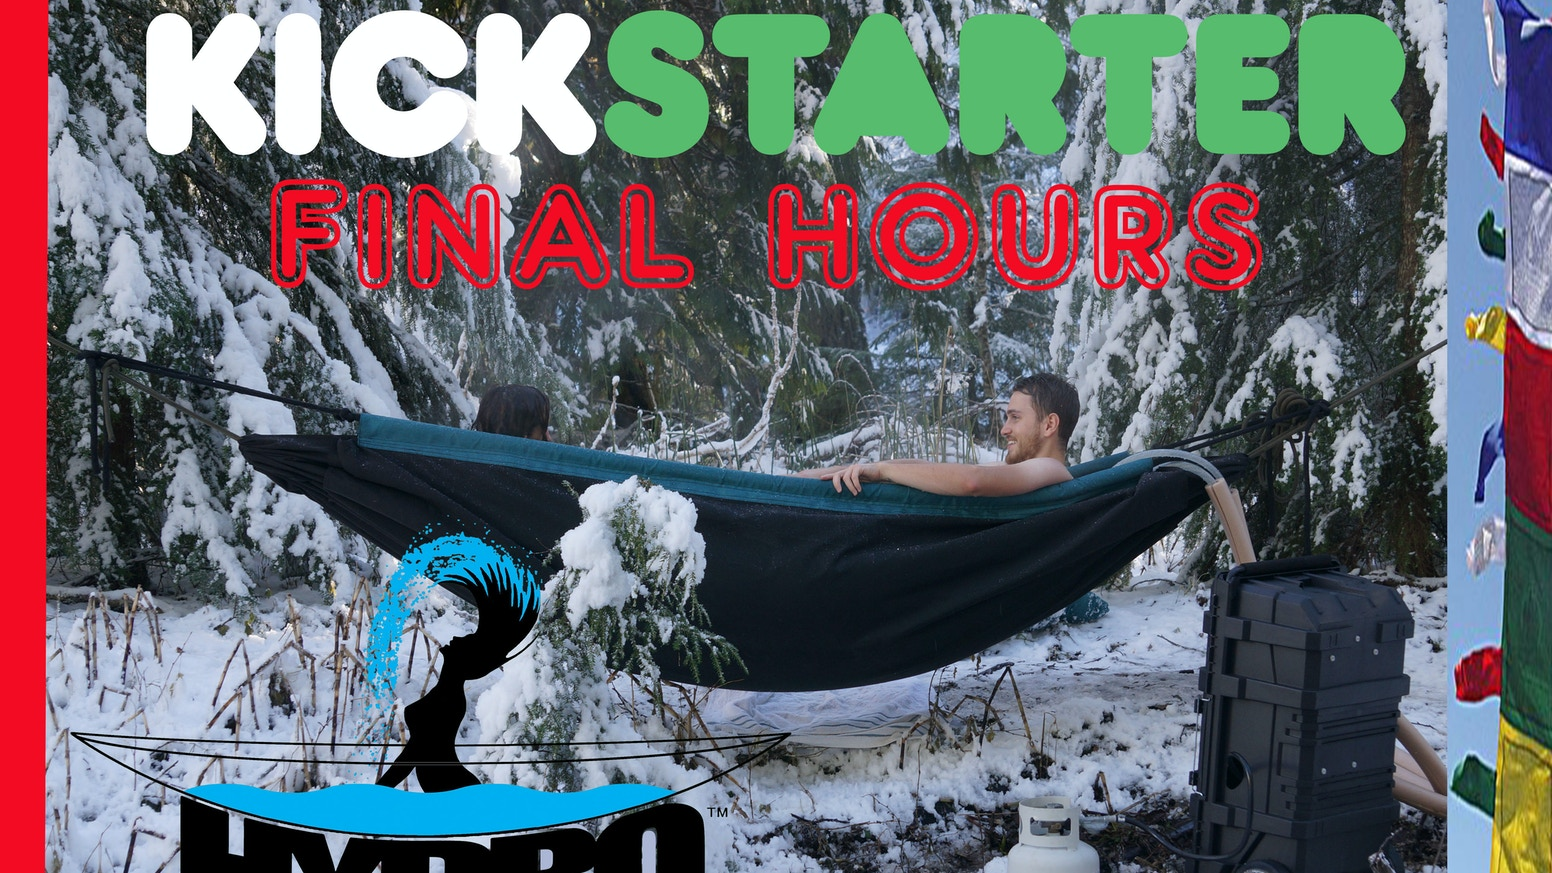 Hot Tub Hammock, yes a revolution.  Suspended it, lay in the snow or sand for a portable hot tub liner. ..fun meets easy luxury.